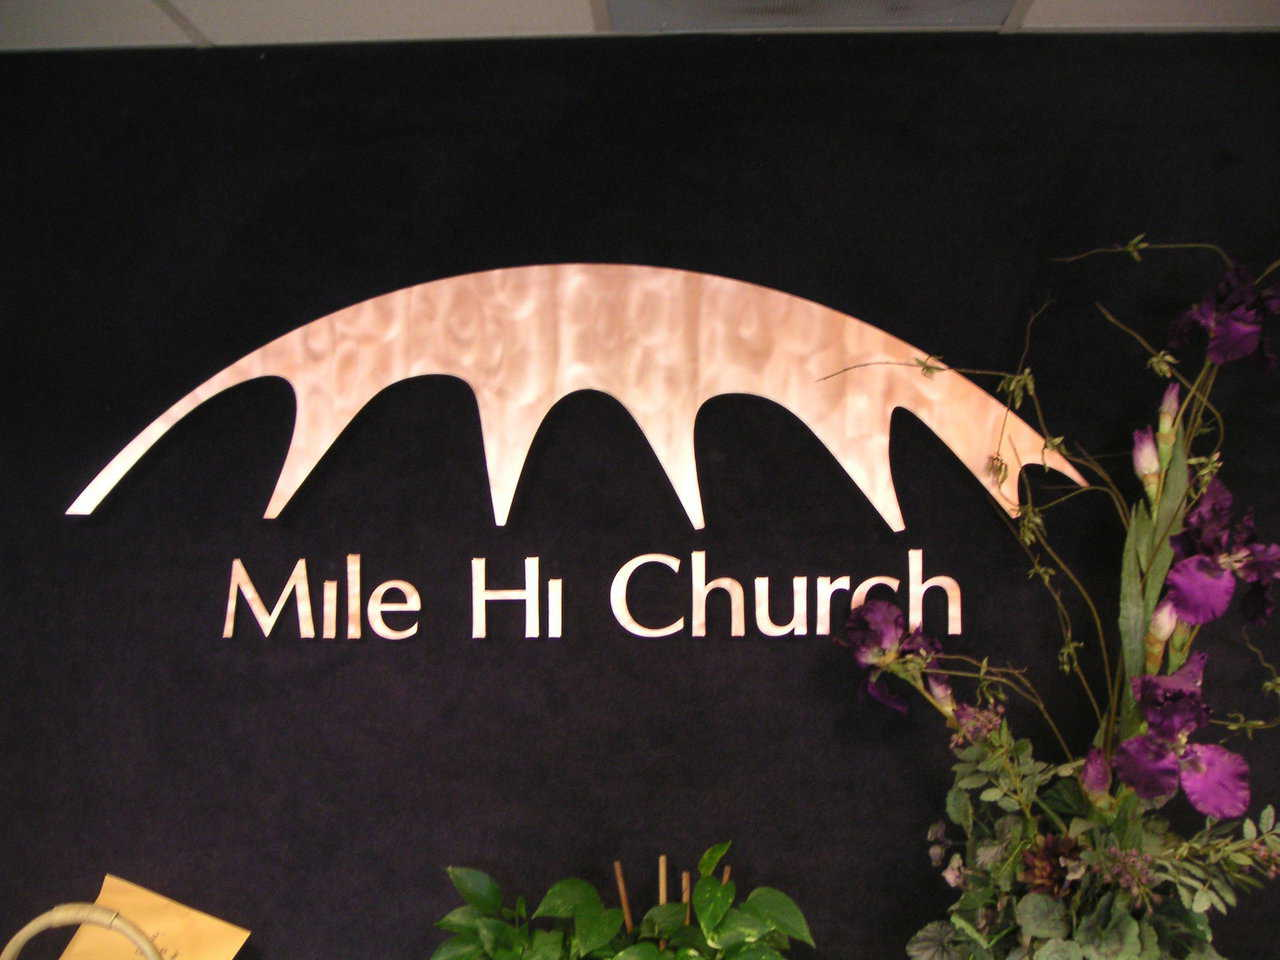 Built for growth — Mile Hi Church plans to eventually add another 600 seats in its dome sanctuary that now seats 1,500.